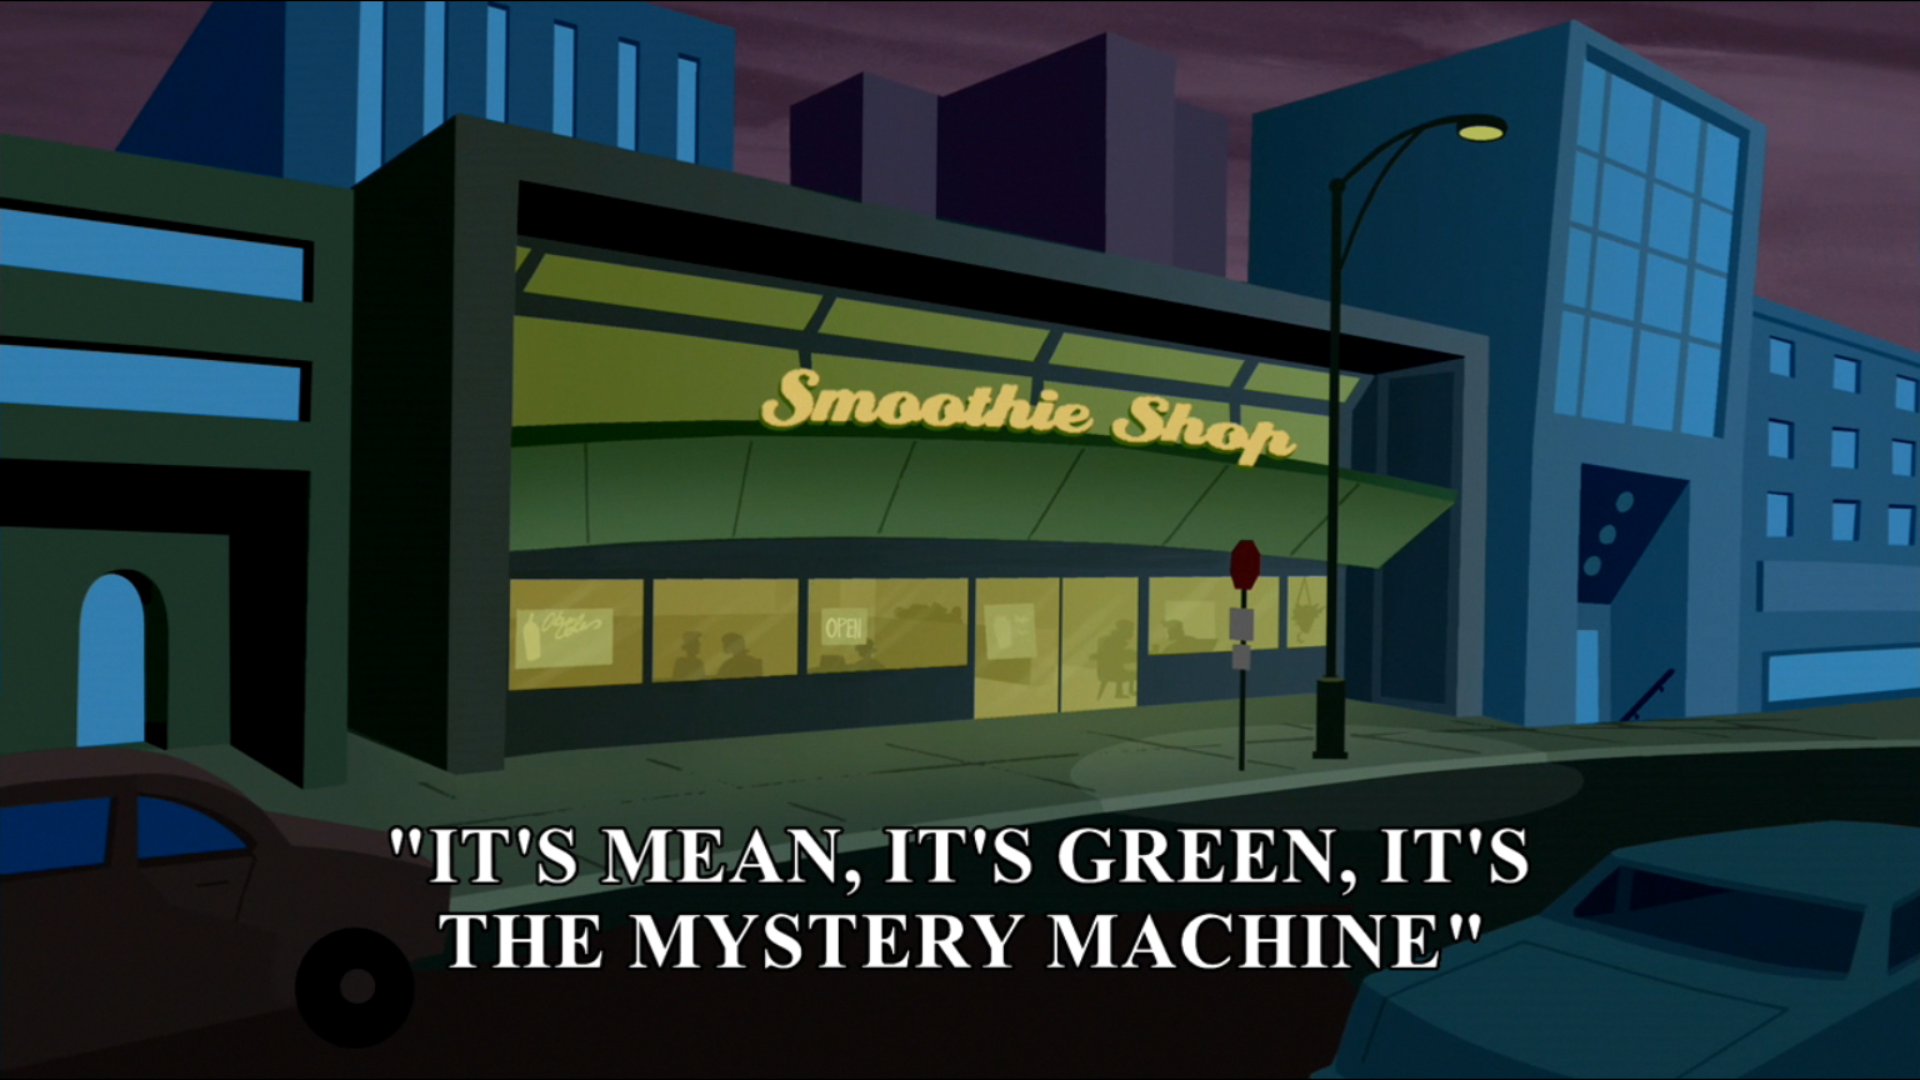 It's Mean, It's Green, It's the Mystery Machine title card